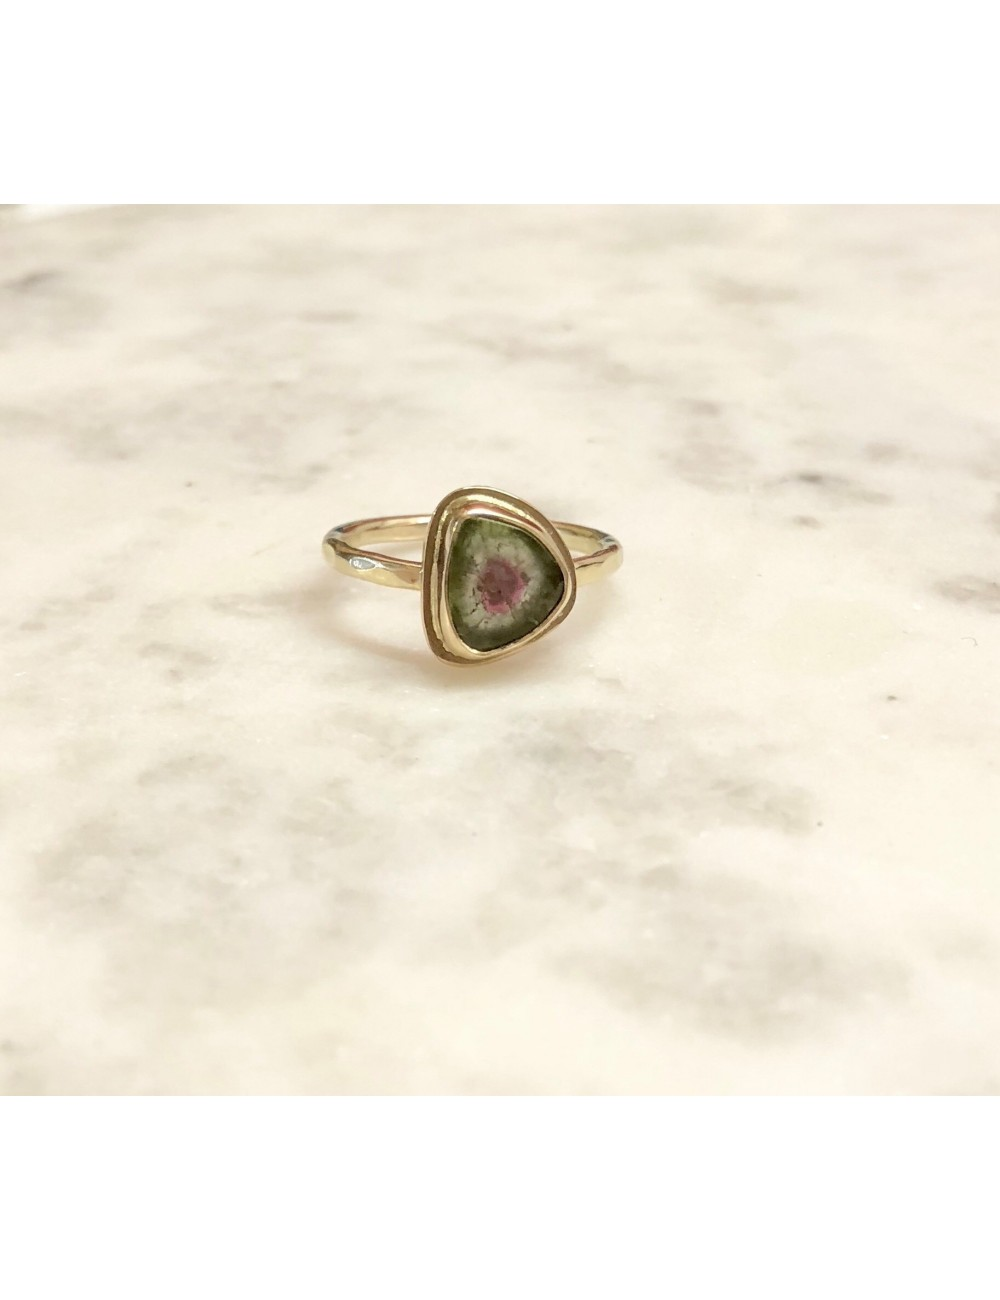 Strawberry Kiwi Tourmaline Ring